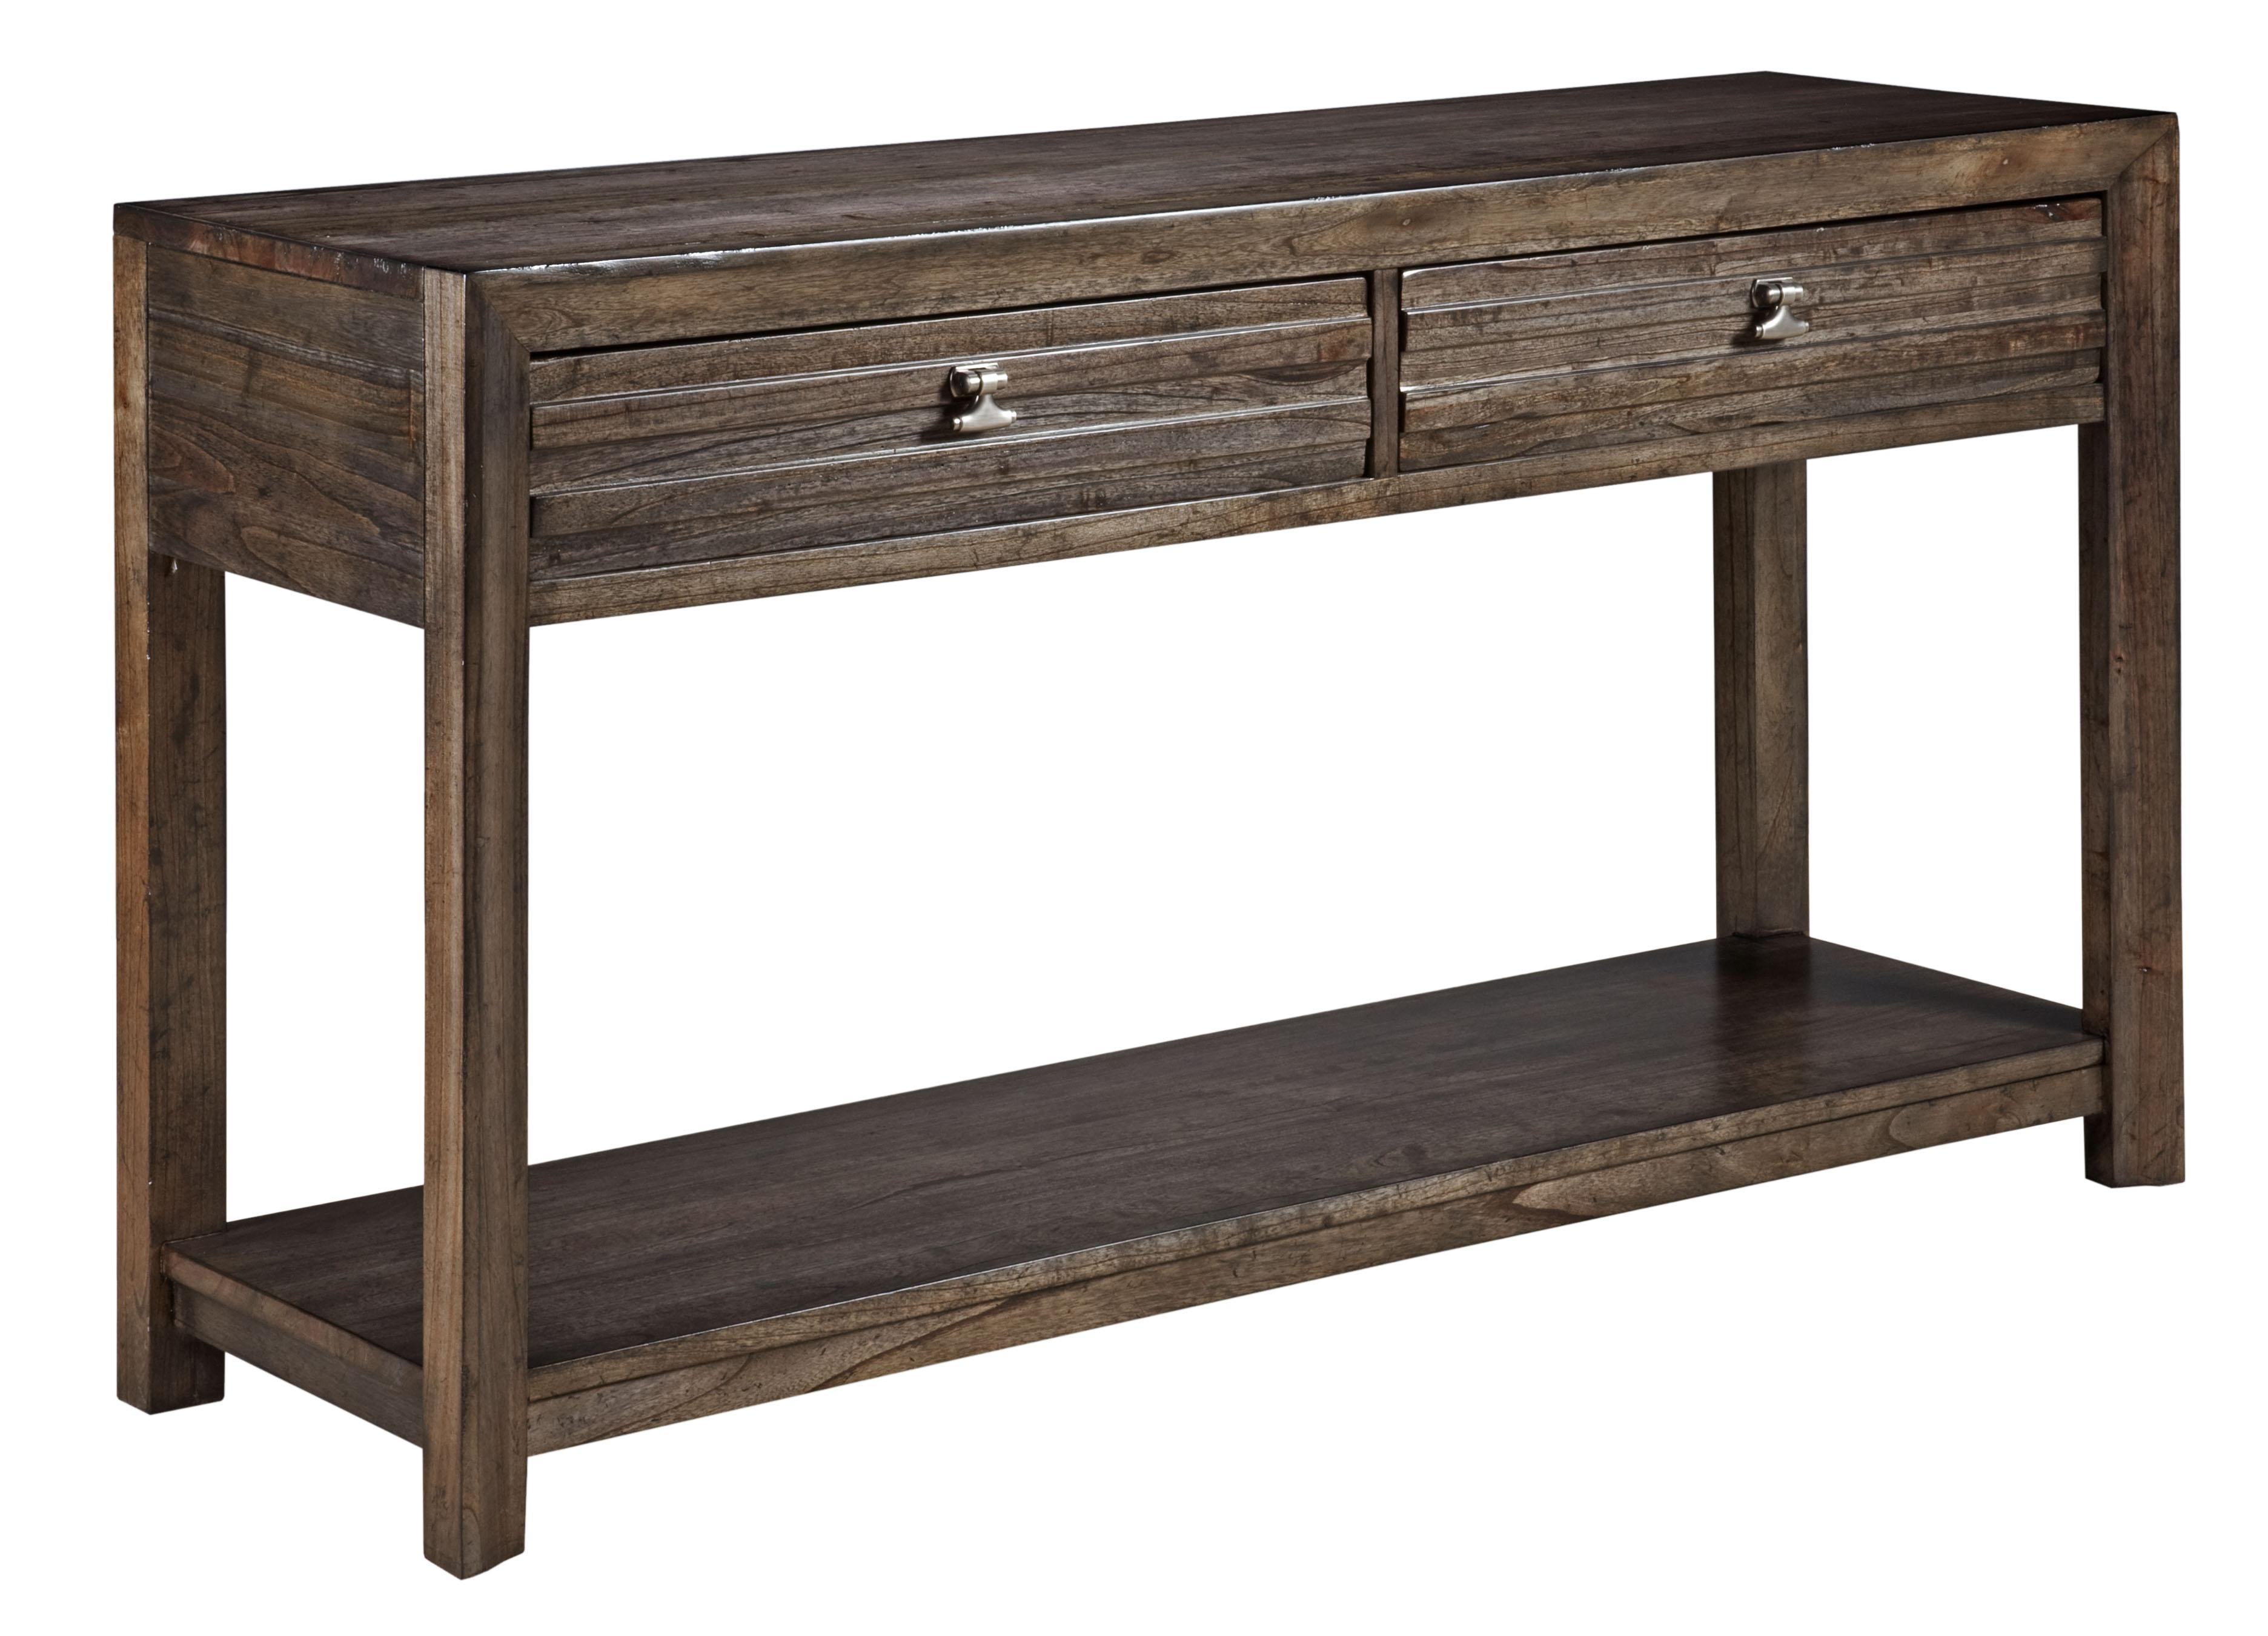 Kincaid Furniture Montreat Montreat Sofa Table - Item Number: 84-025